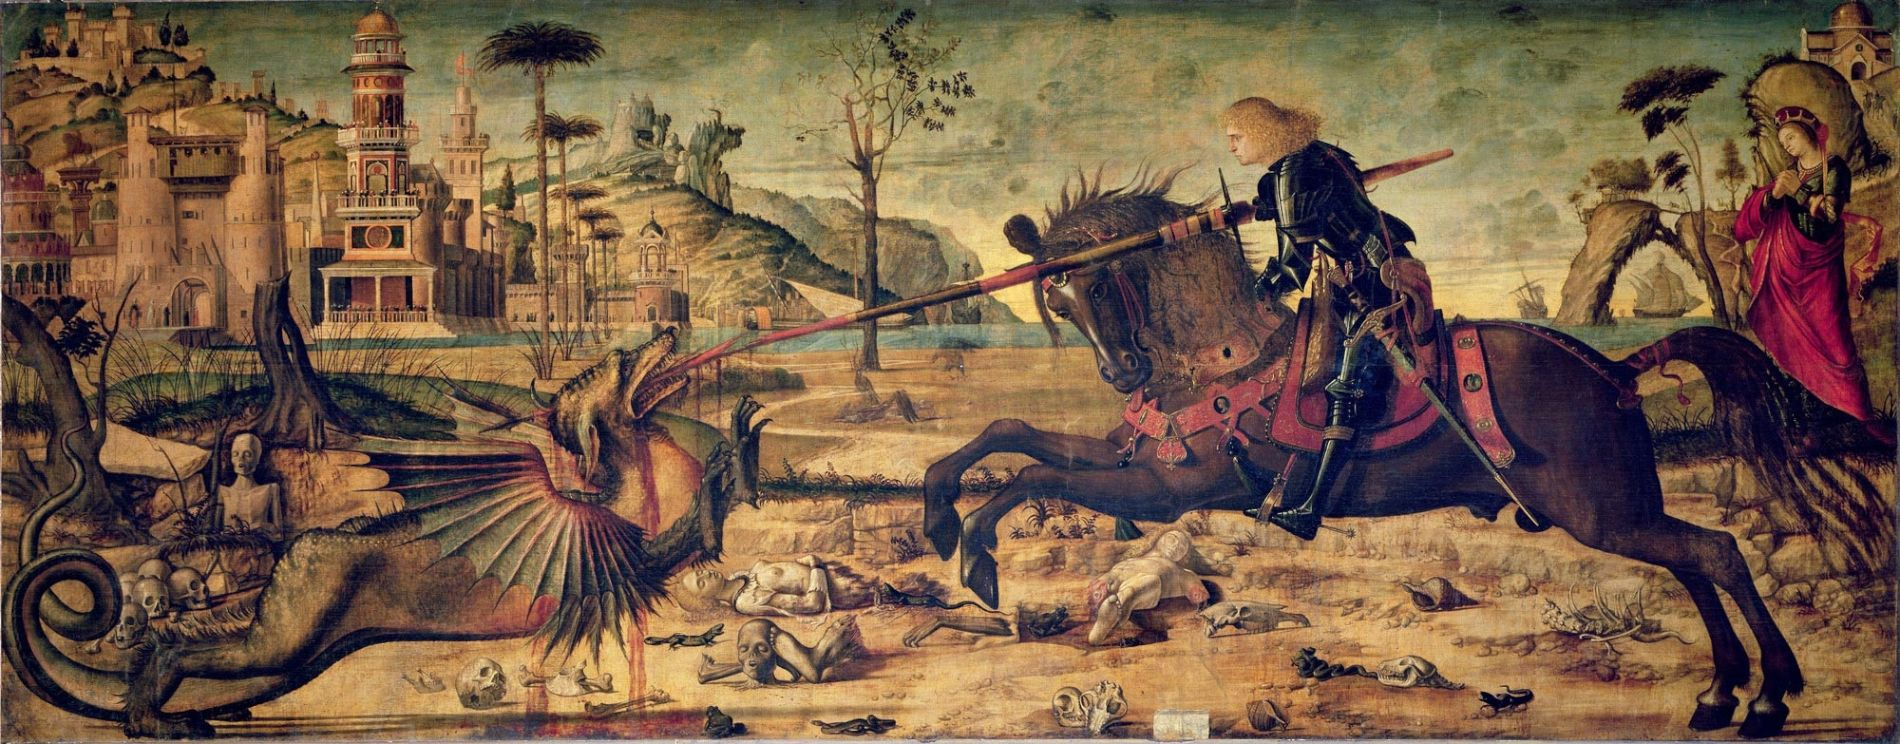 Carpaccio, St. George and the Dragon (1502) Tempera on canvas. Scuola di San Giorgio, Venice. Features in 'Miss Garnet's Angel' by… | San giorgio, Pop art, Venezia